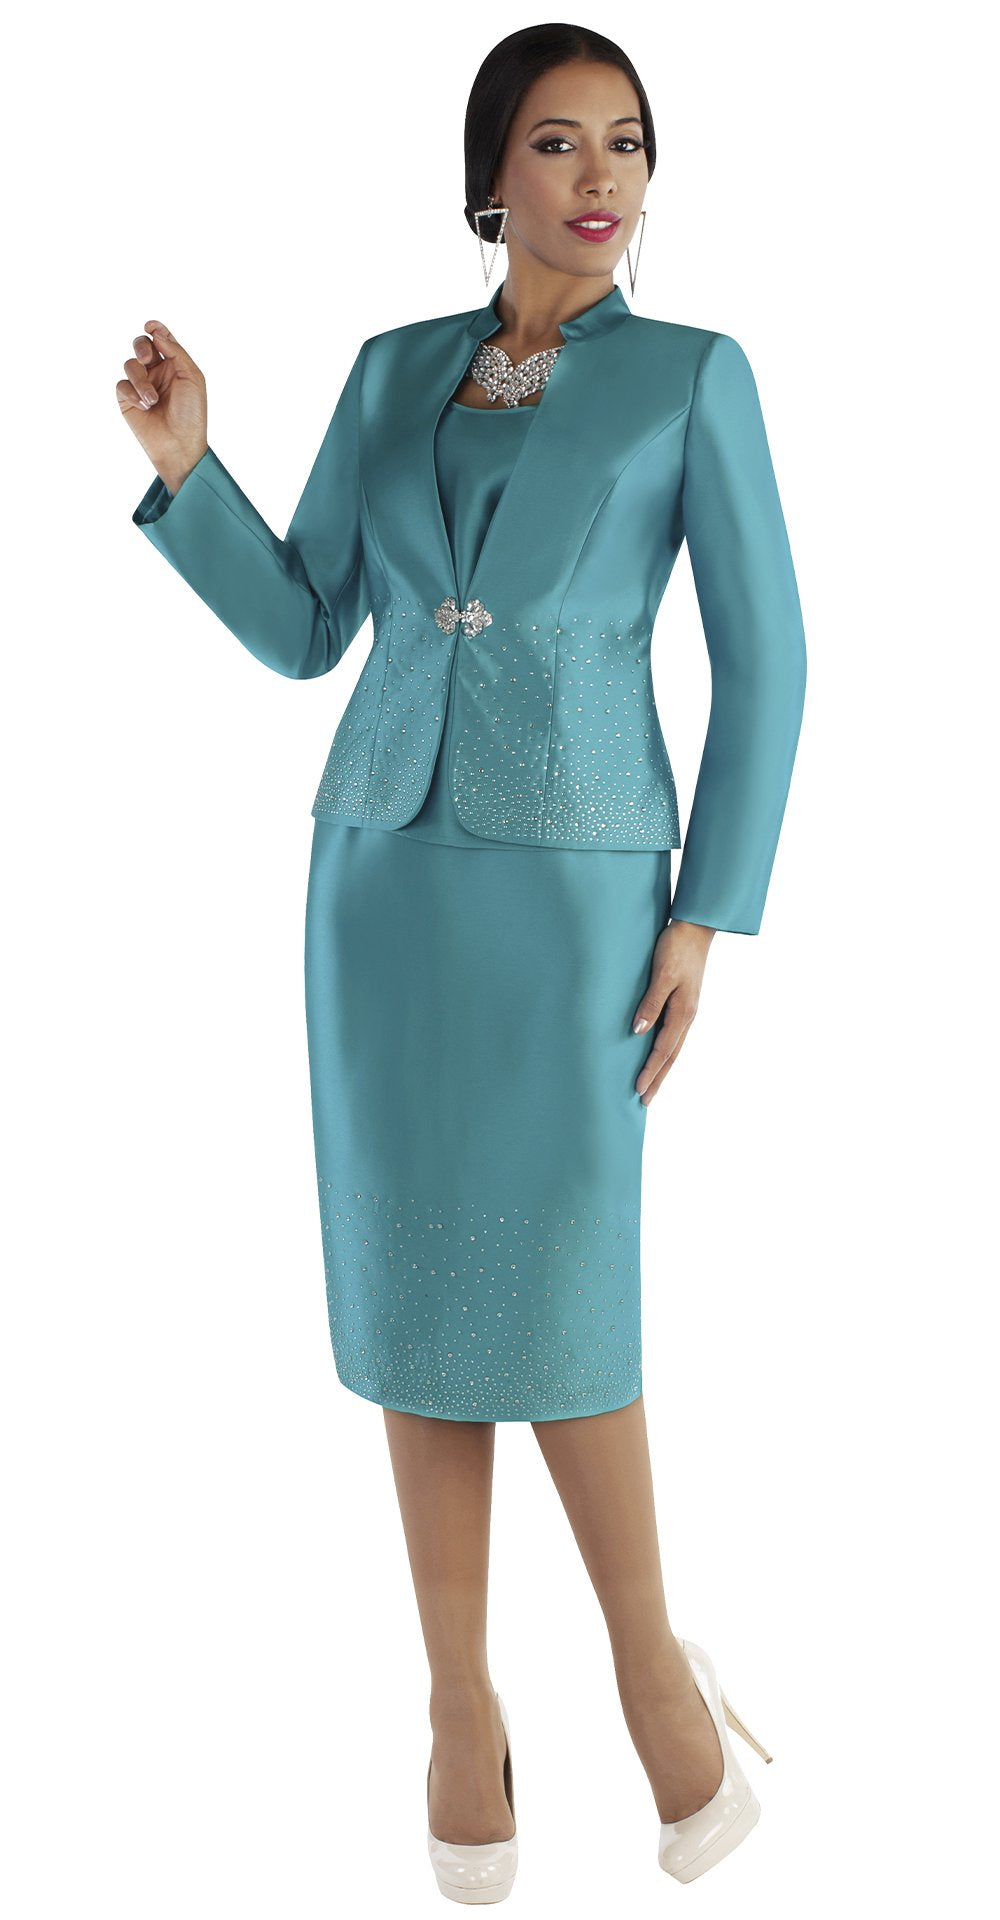 Tally Taylor Suit 4684 - Church Suits For Less